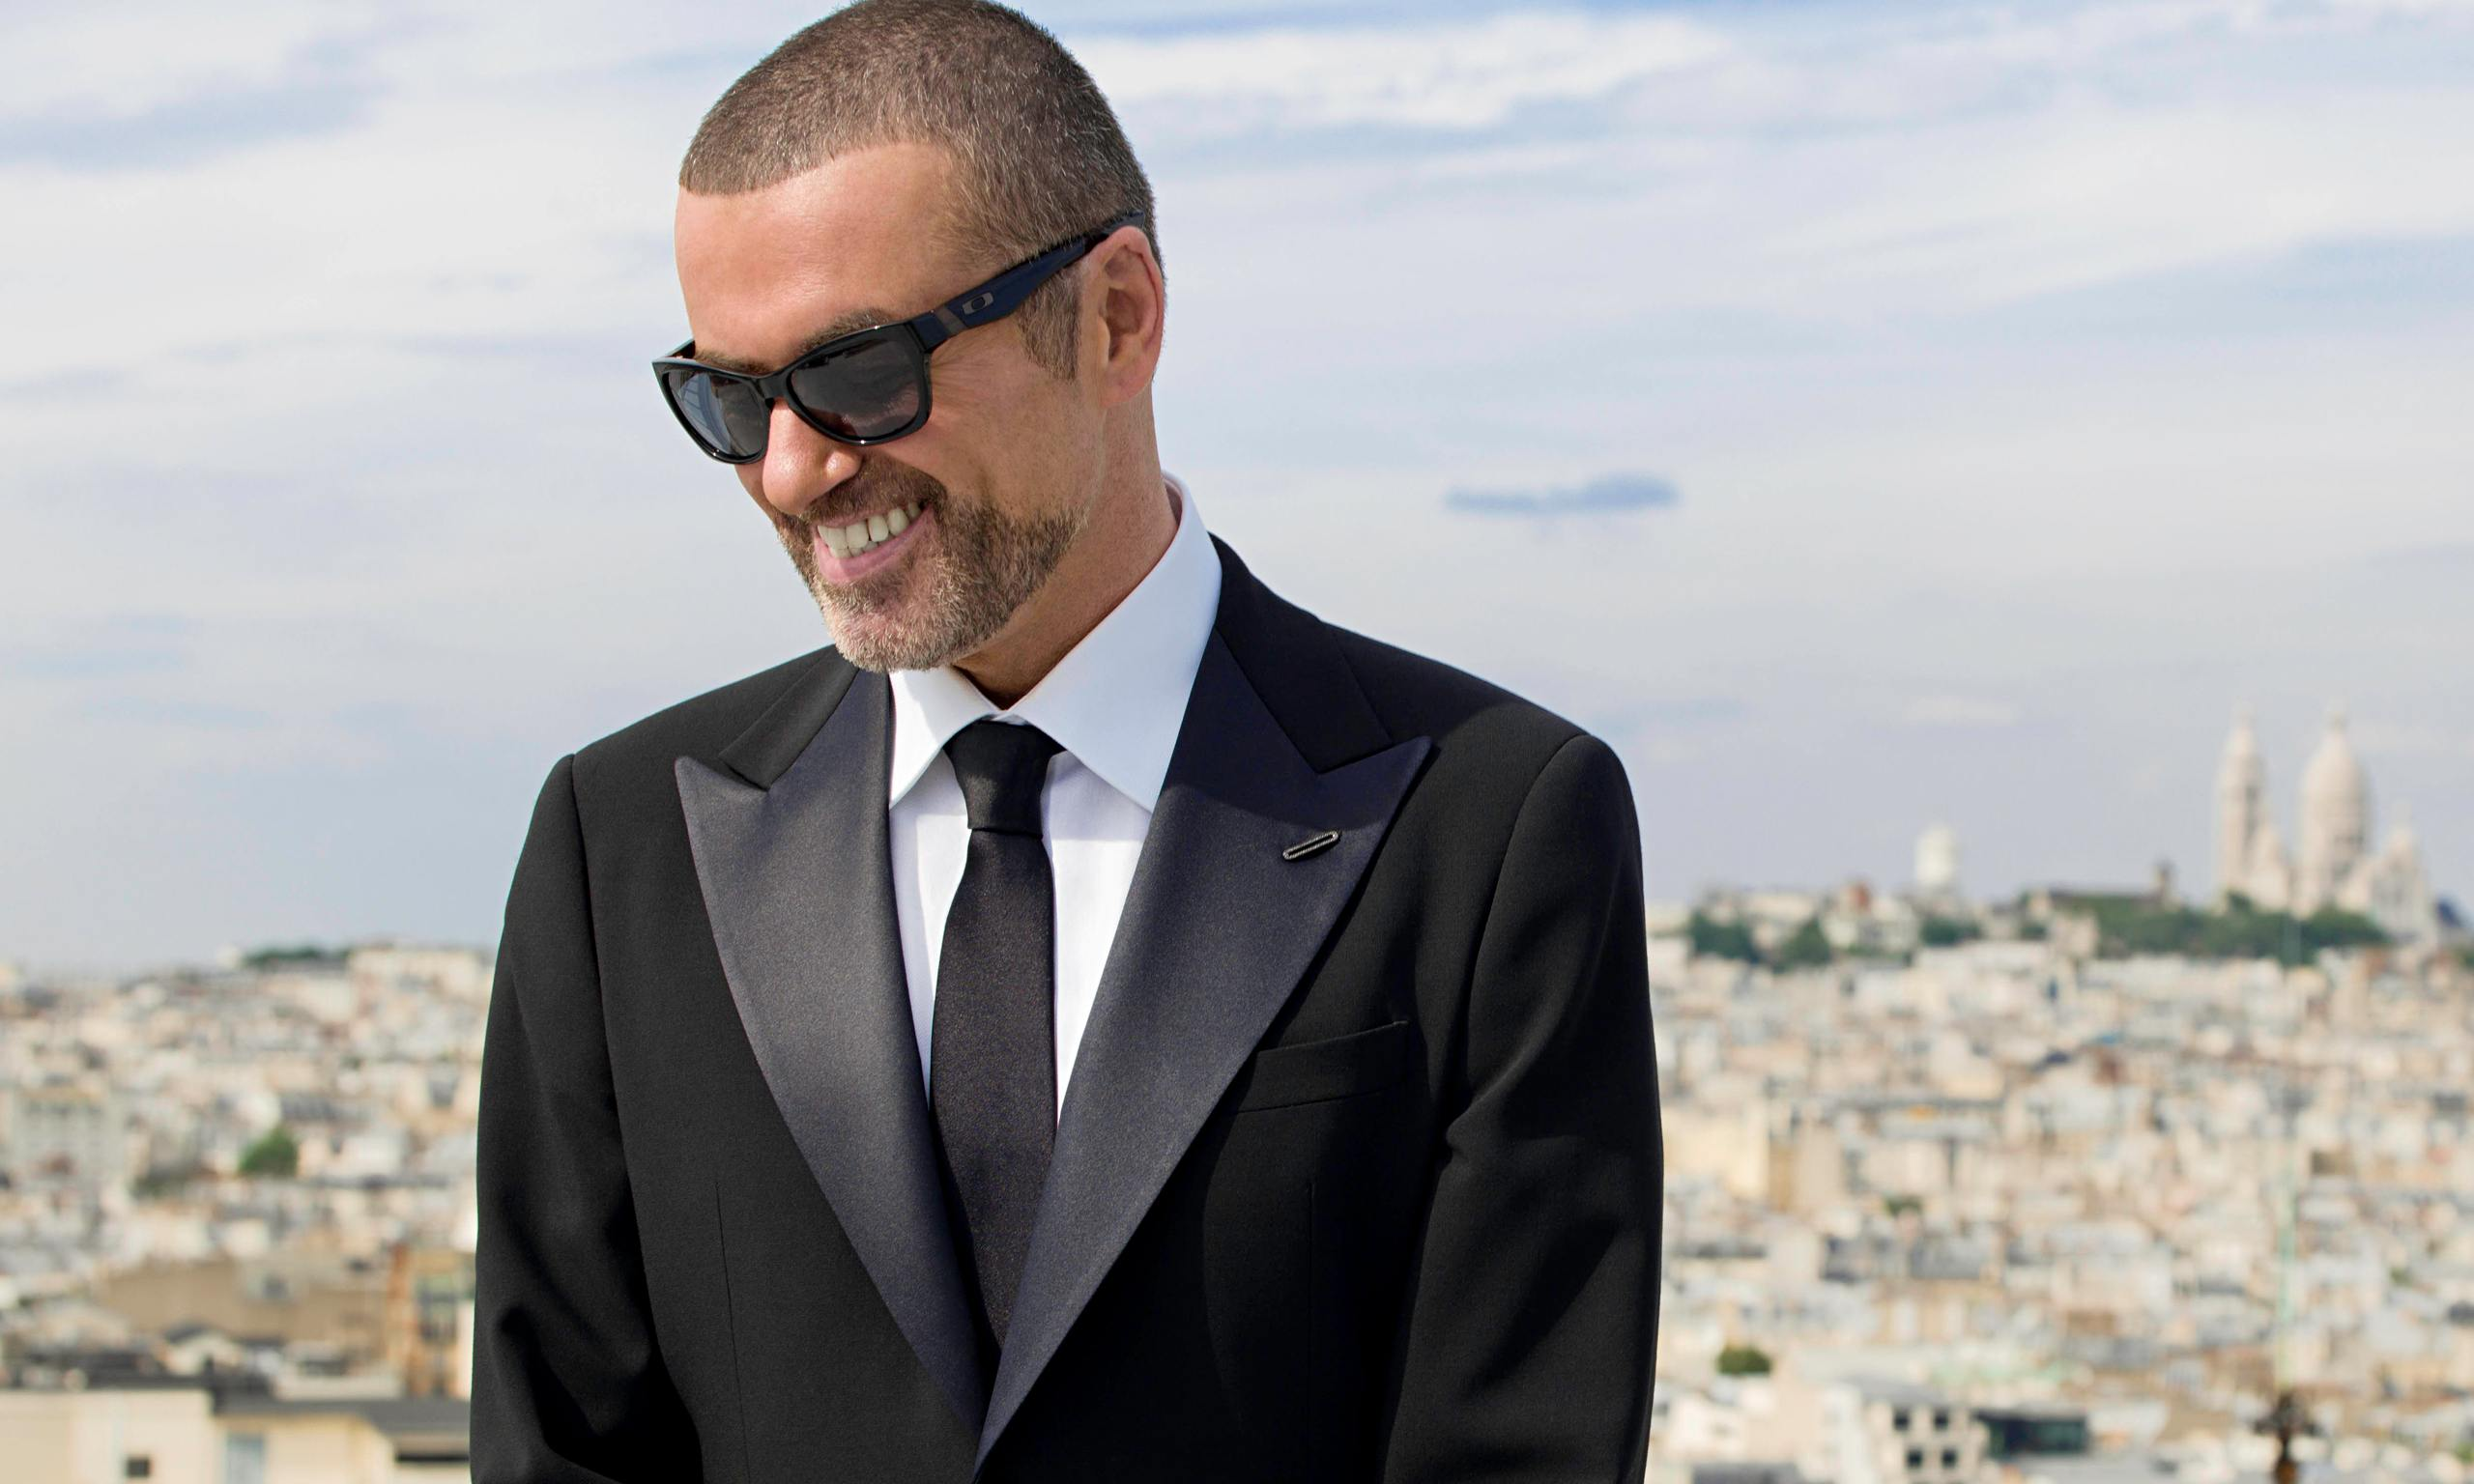 George Michael39;s Going To A Town, this week39;s best new track | Music